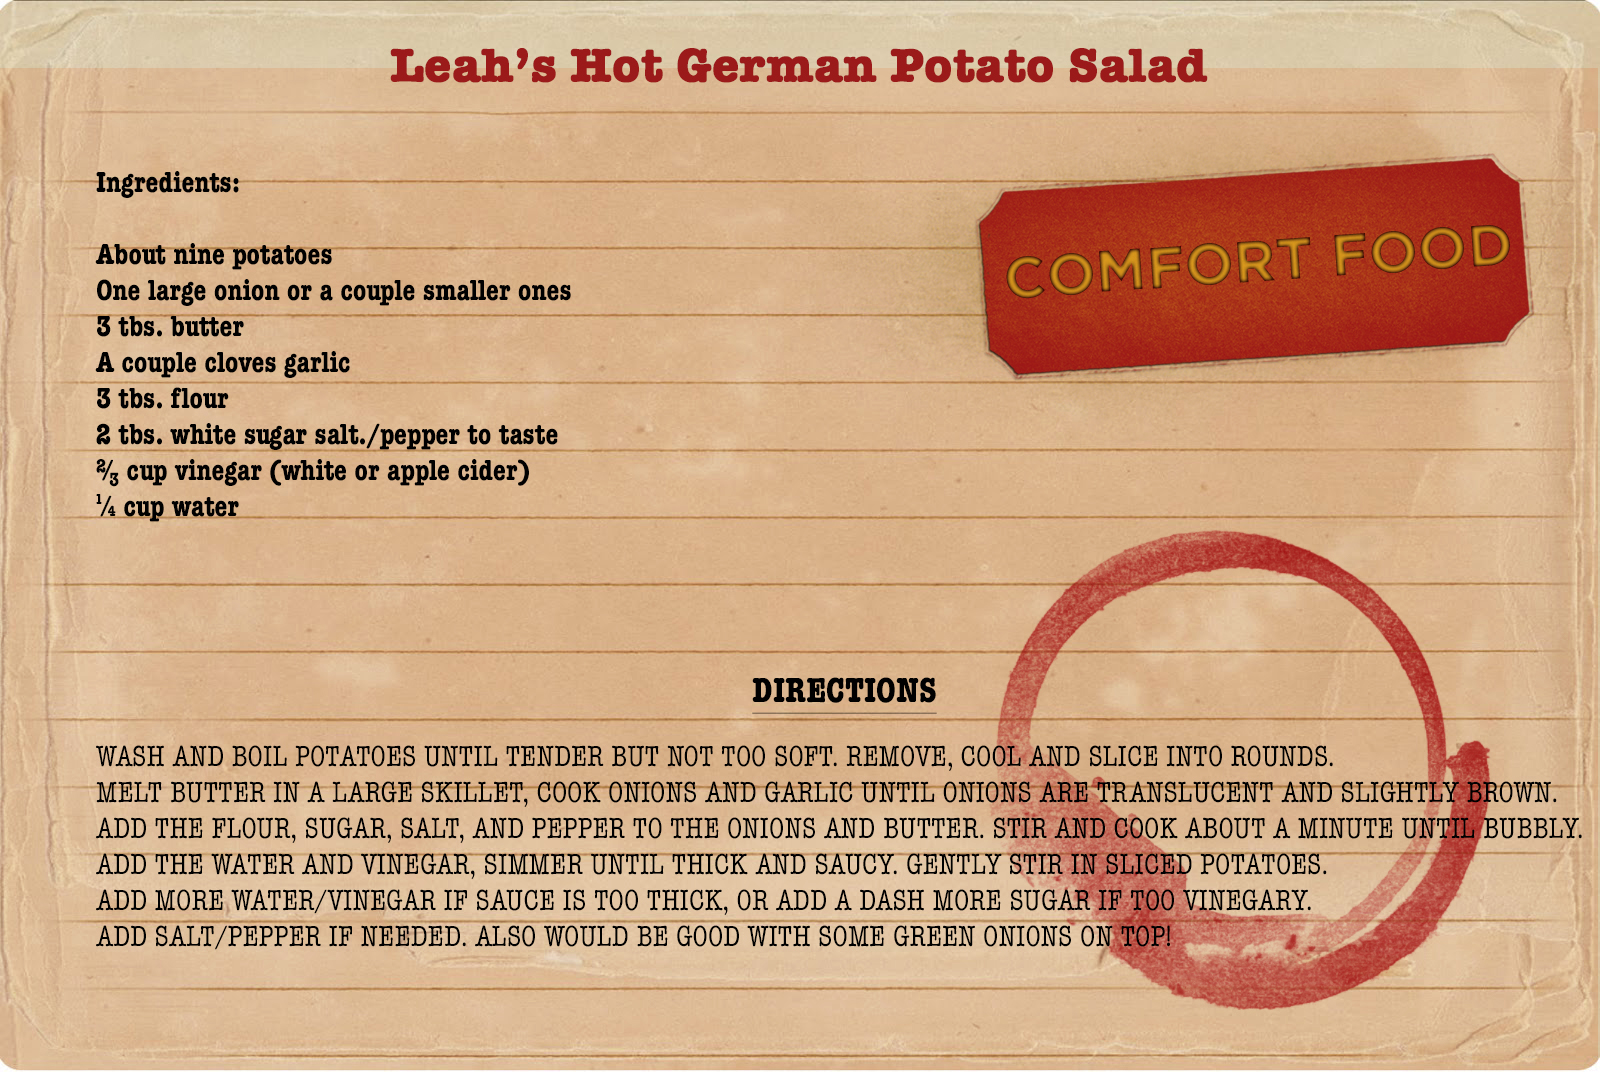 College comfort food--hot German potato salad